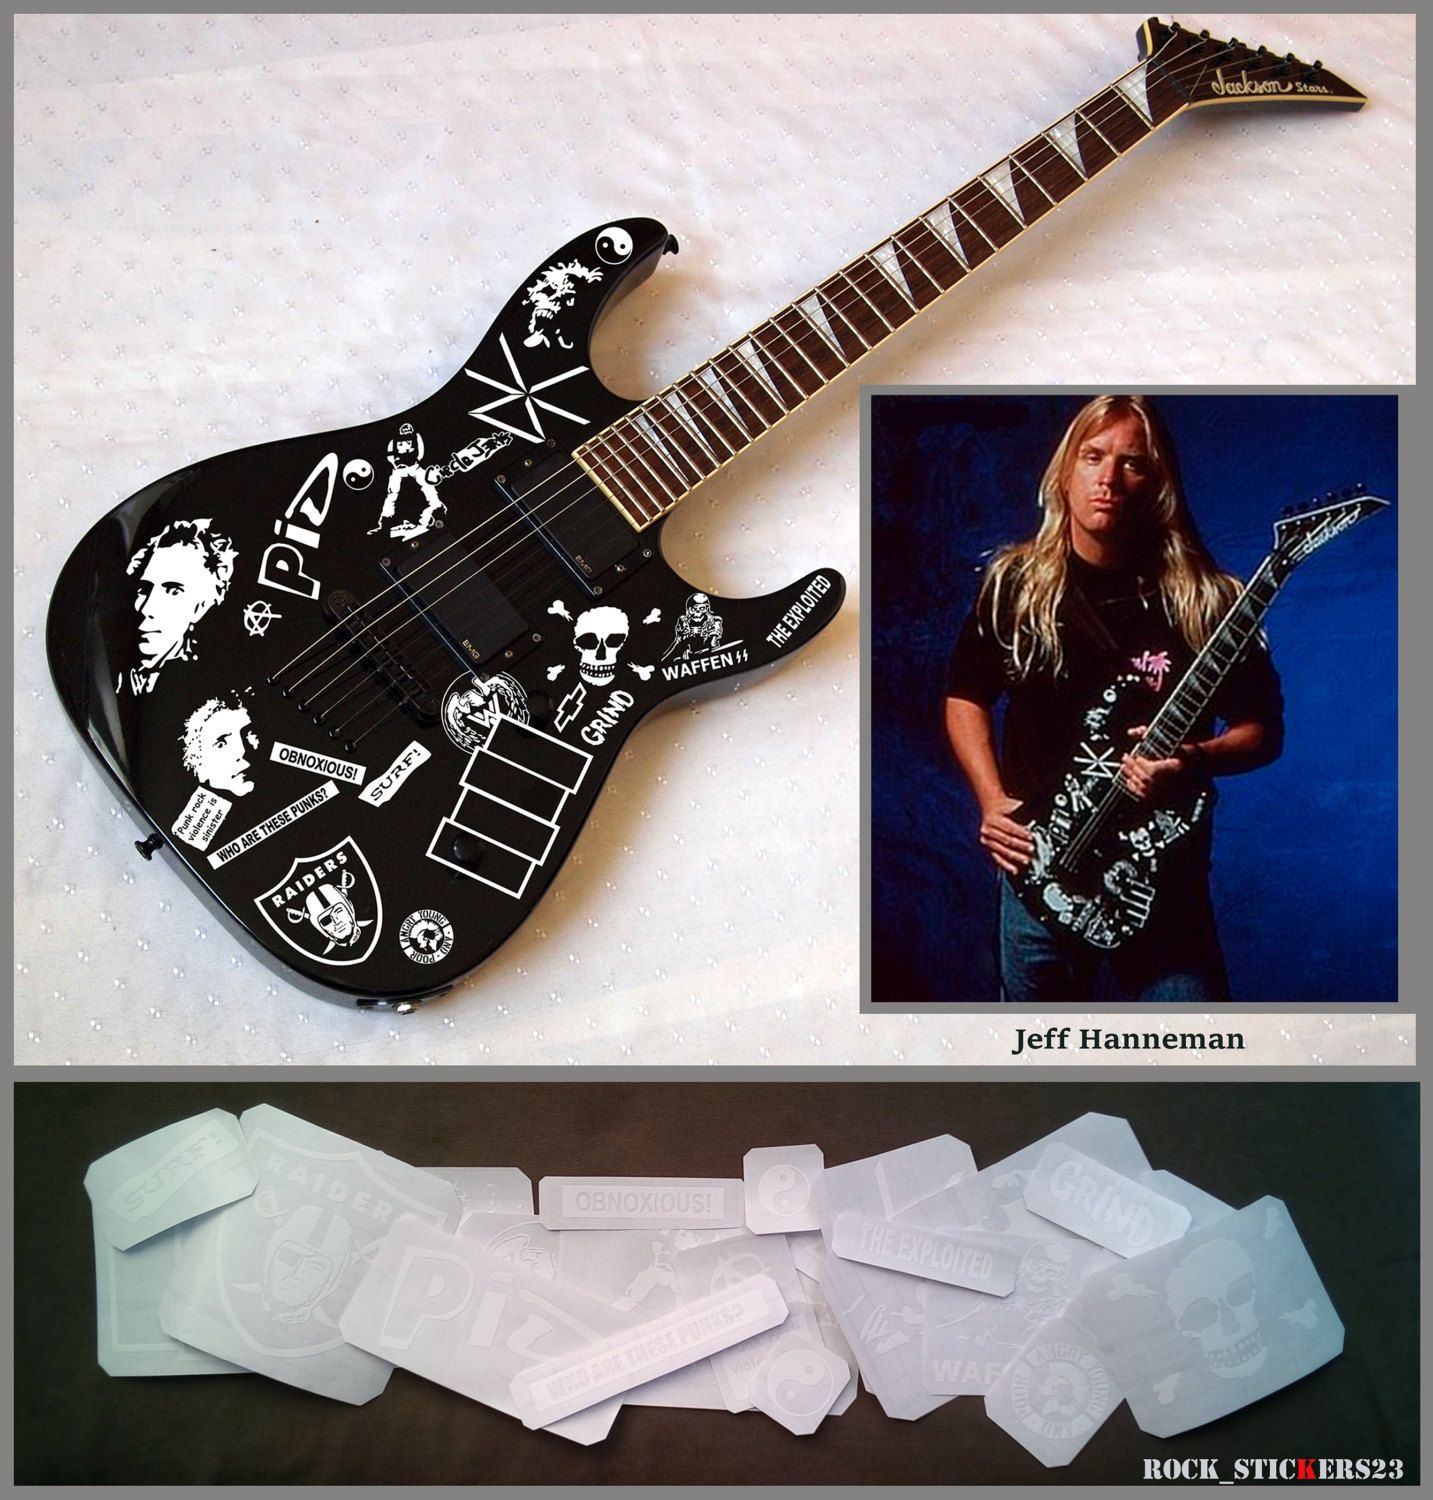 Jeff Hanneman Guitar Stickers Signature Vinyl Decal Slayer Jackson - Guitar custom vinyl stickers